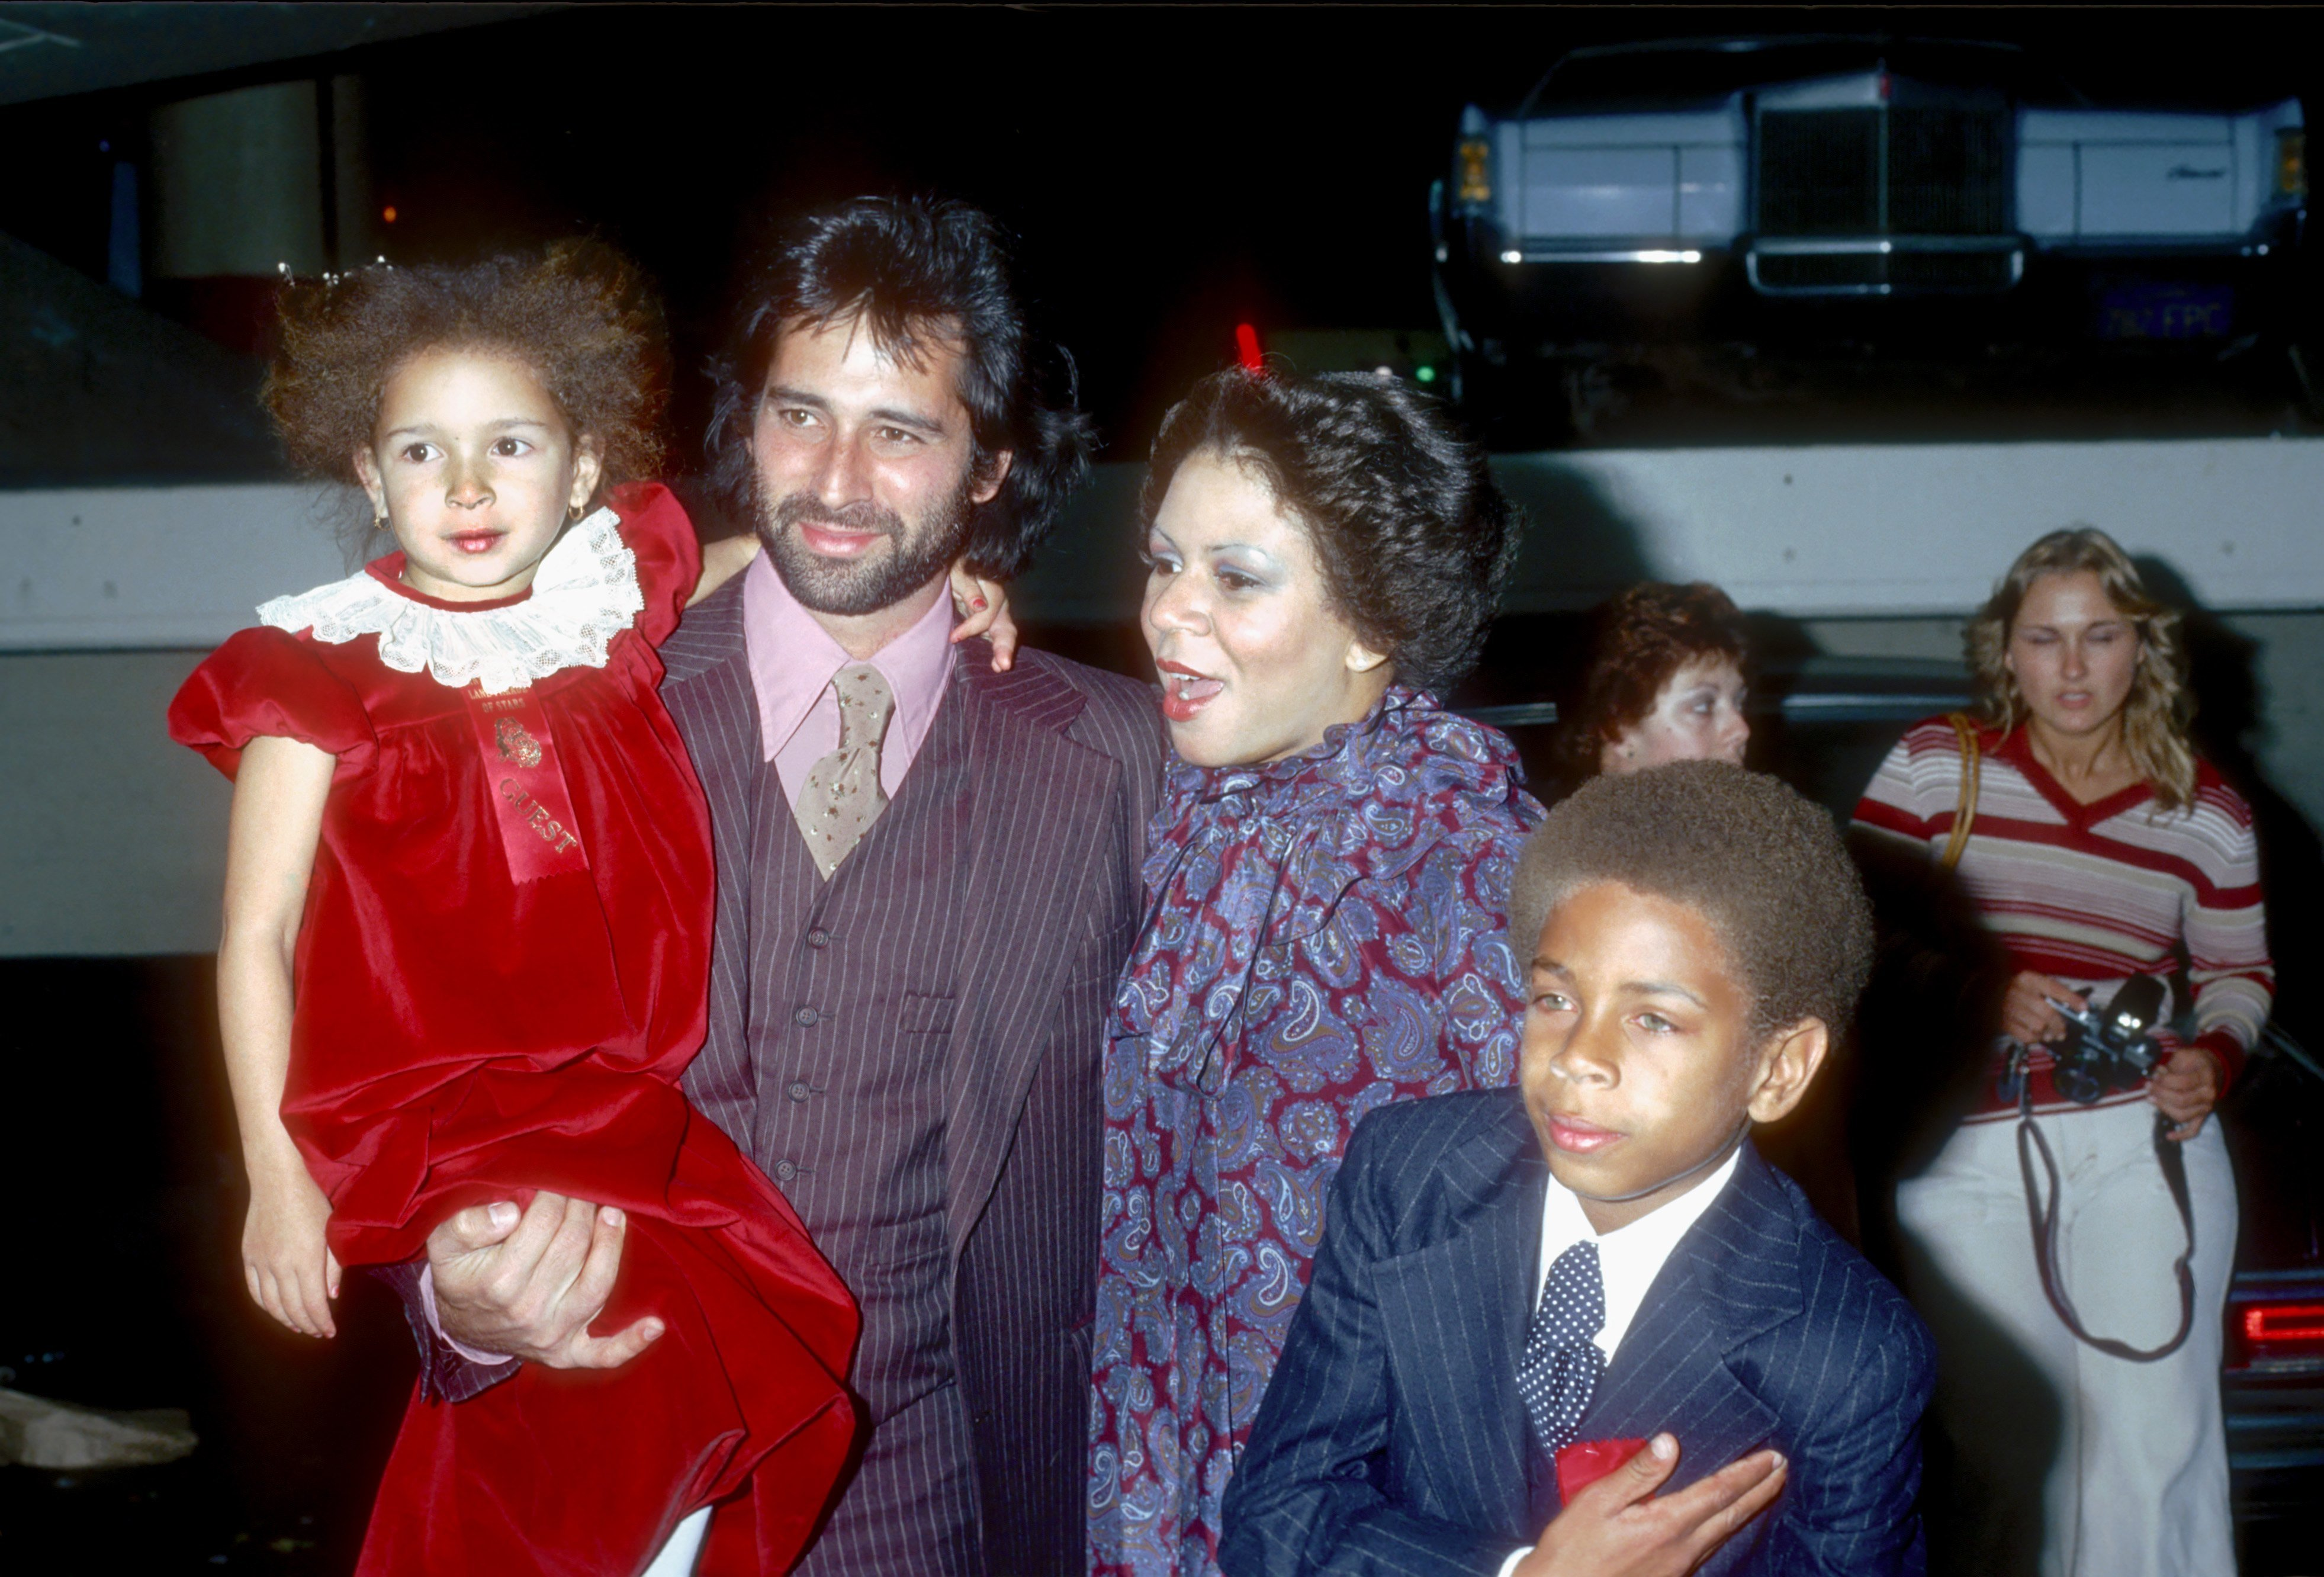 Singer Minnie Riperton, her husband Richard Rudolph and children Maya Rudolph and Marc Rudolph attend the Hollywood Christmas Parade in December 1978.   Photo: Getty Images